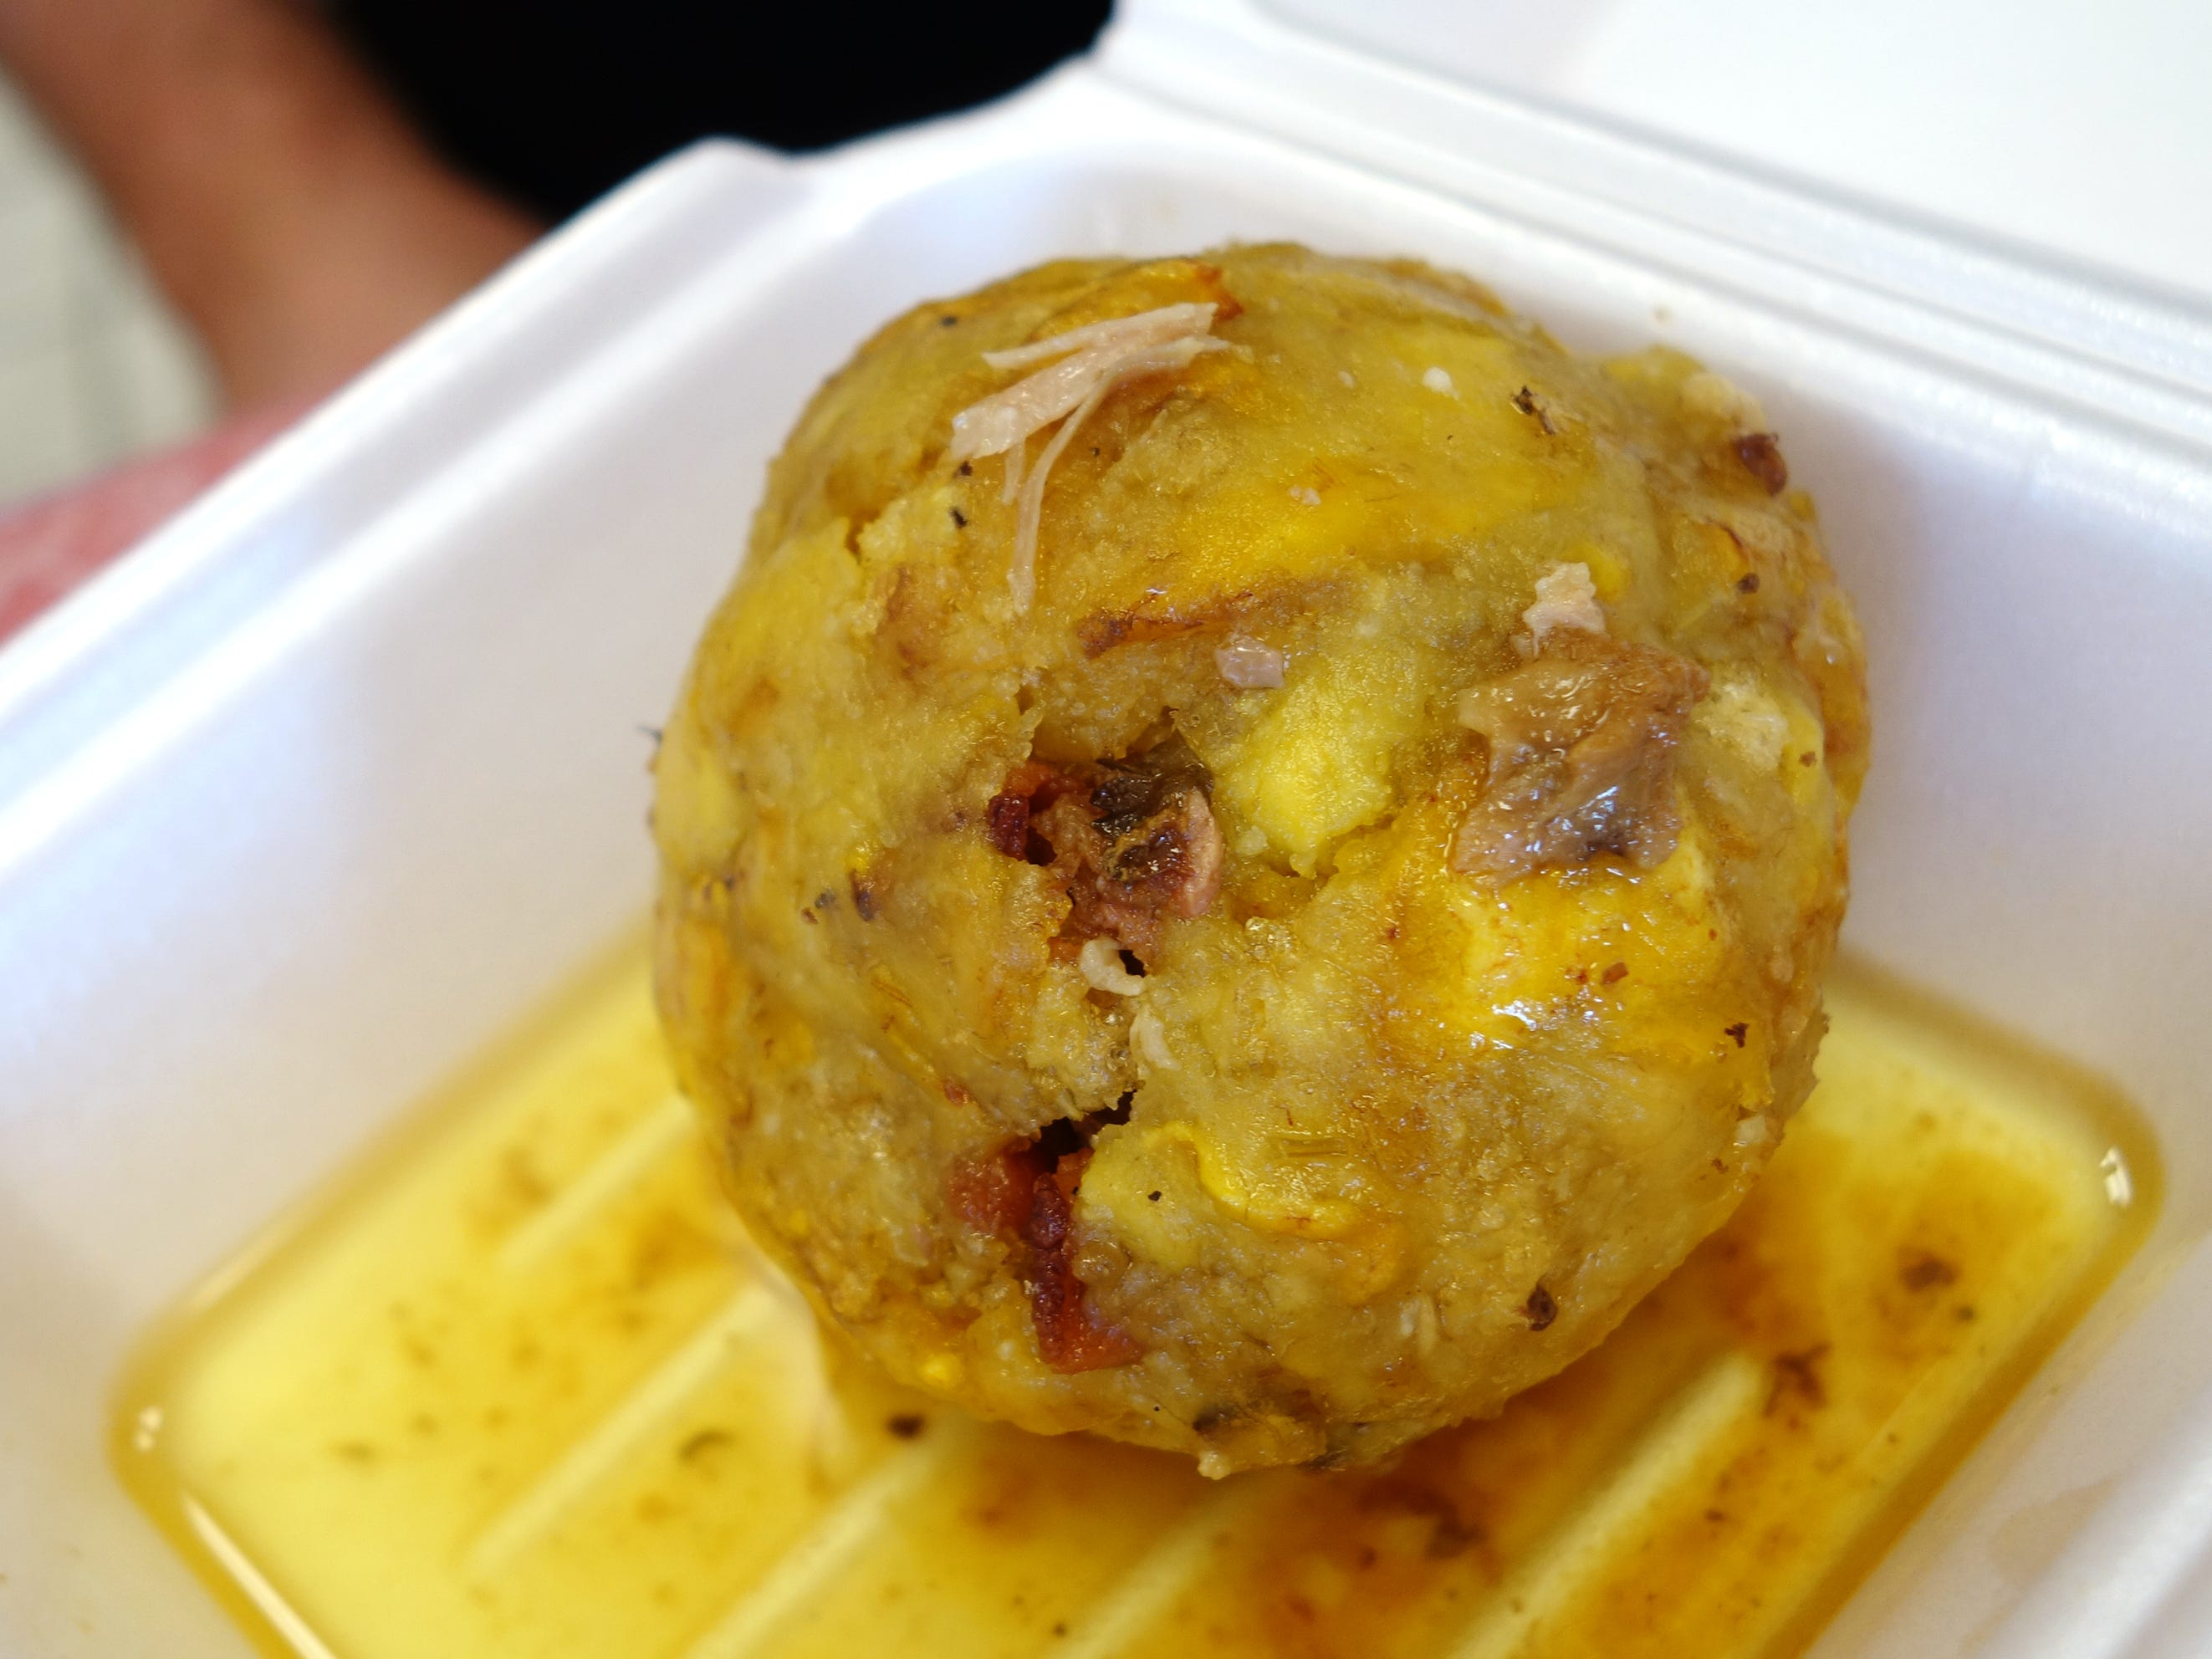 Mofongo at Millie's Cafe in Mesa.